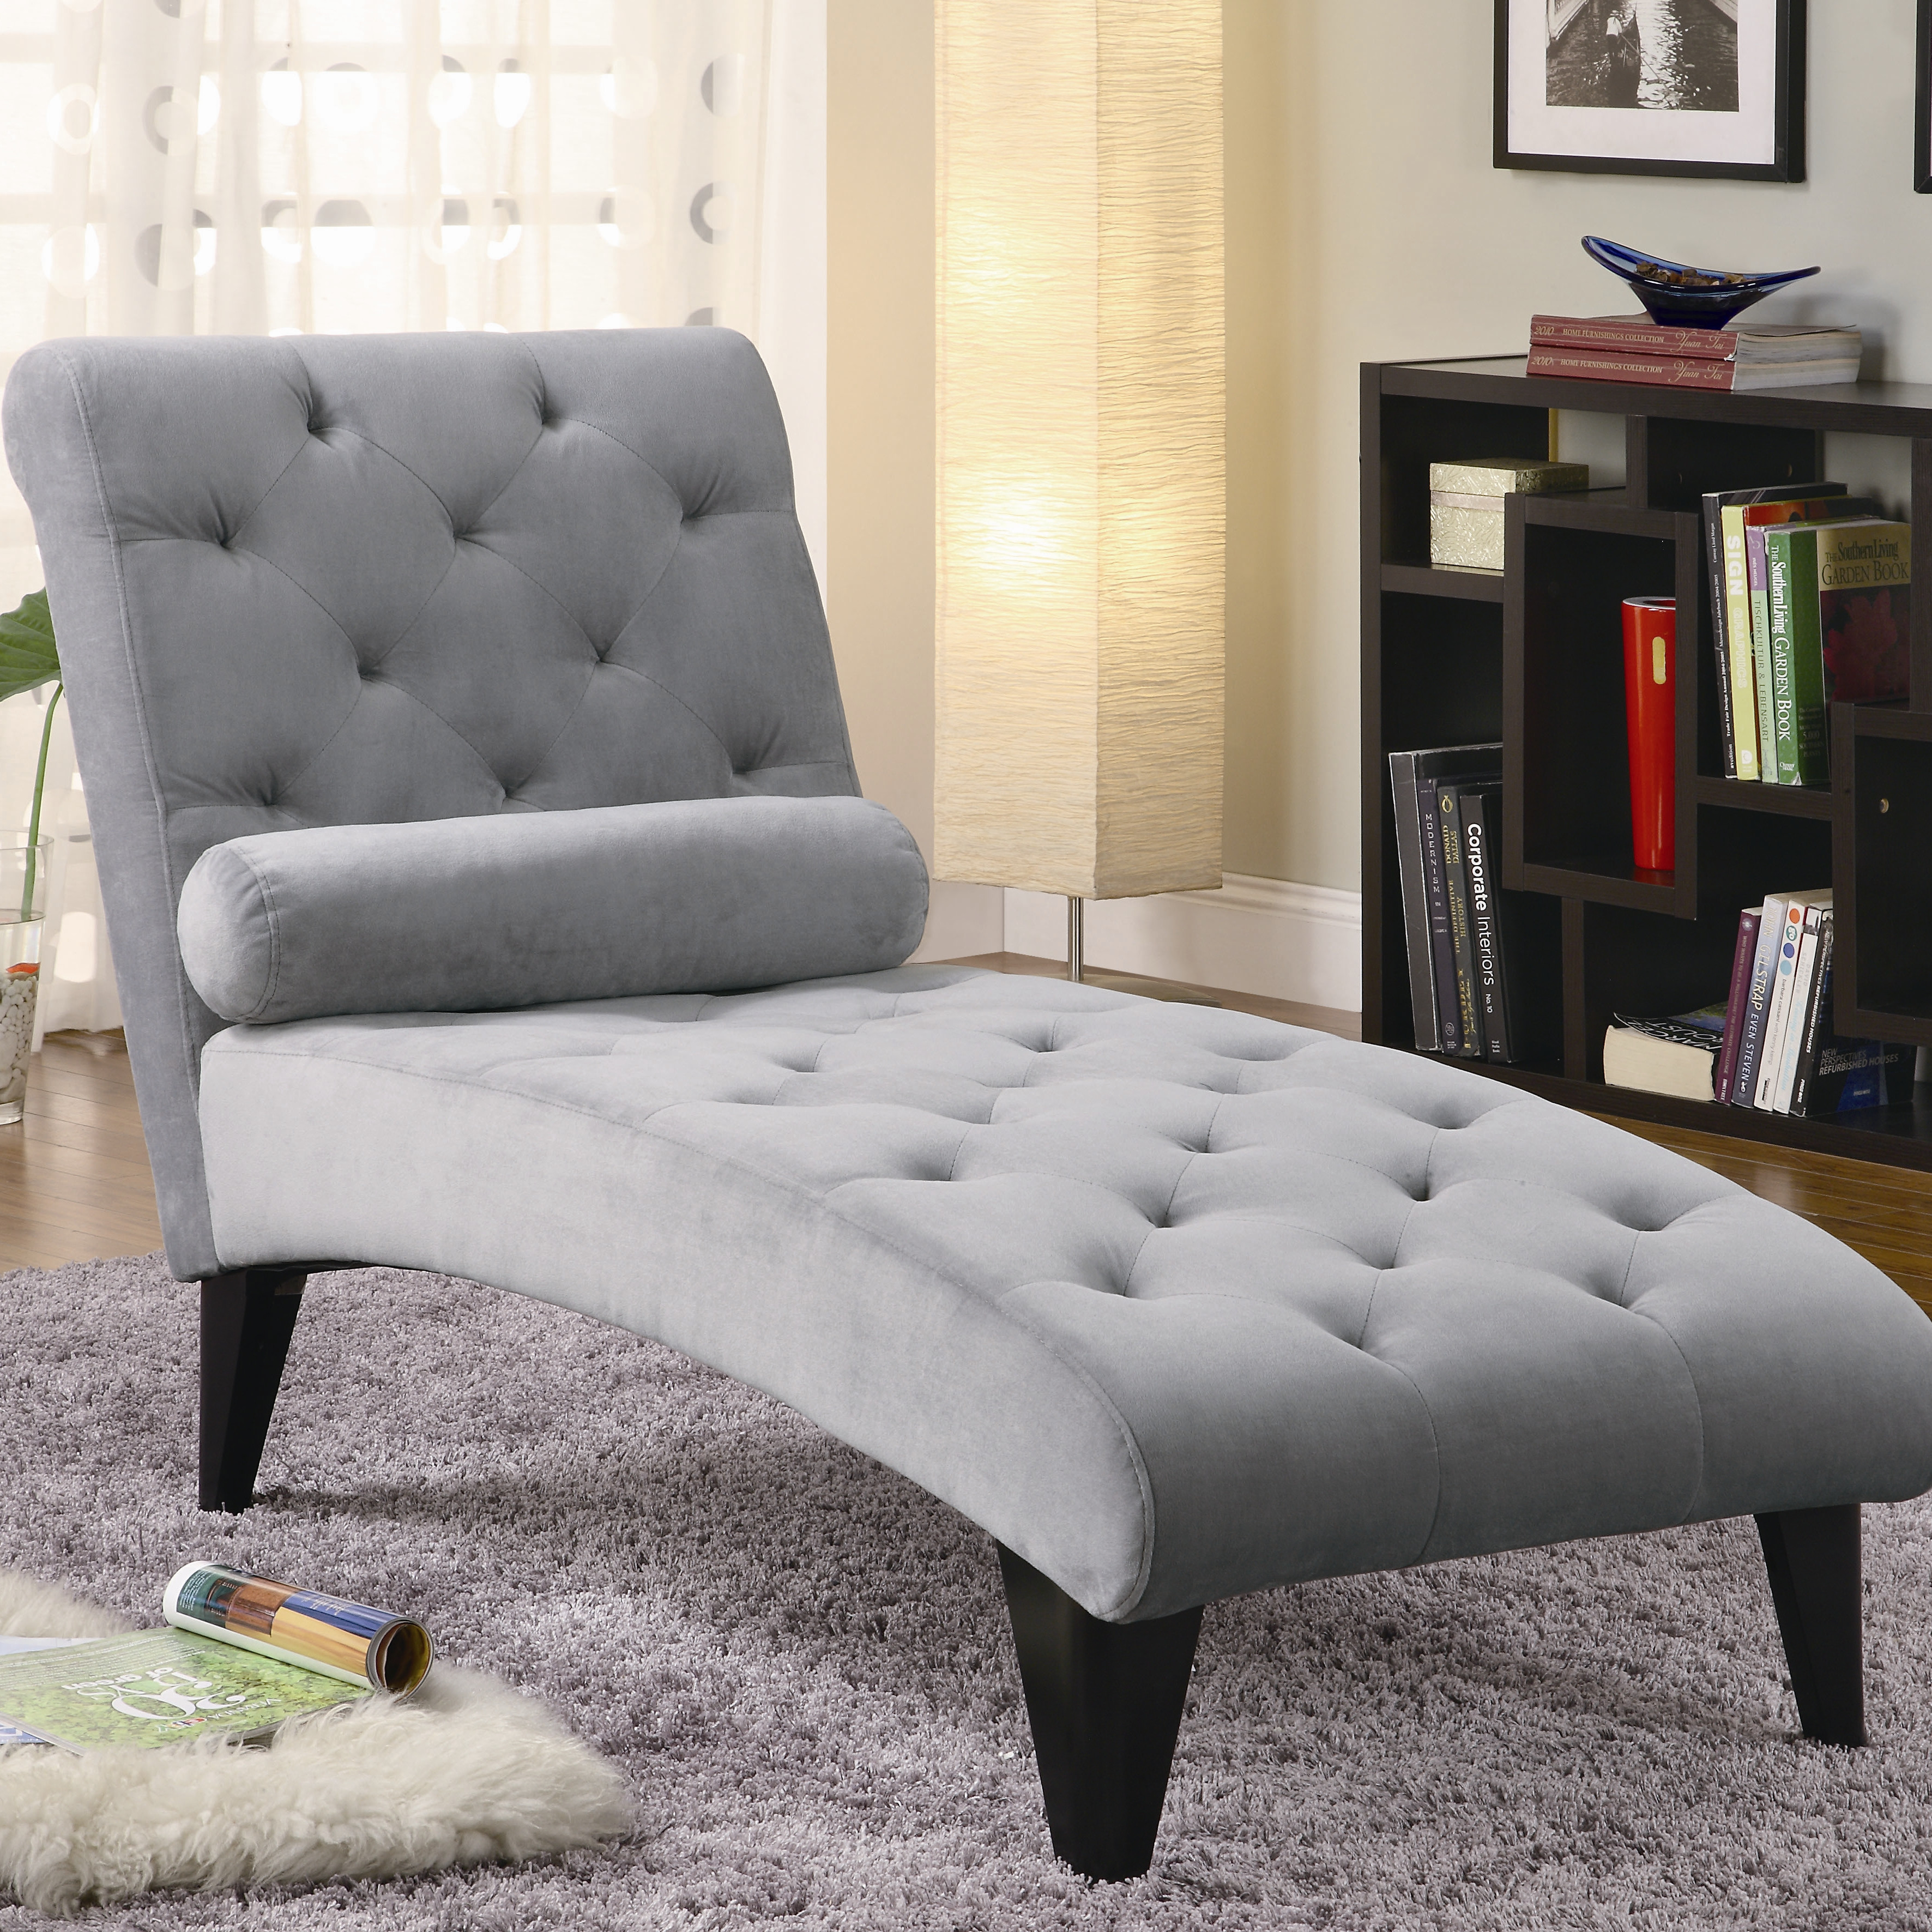 Full Bonded Leather Tufted Chaise Lounge With Chrome Legs